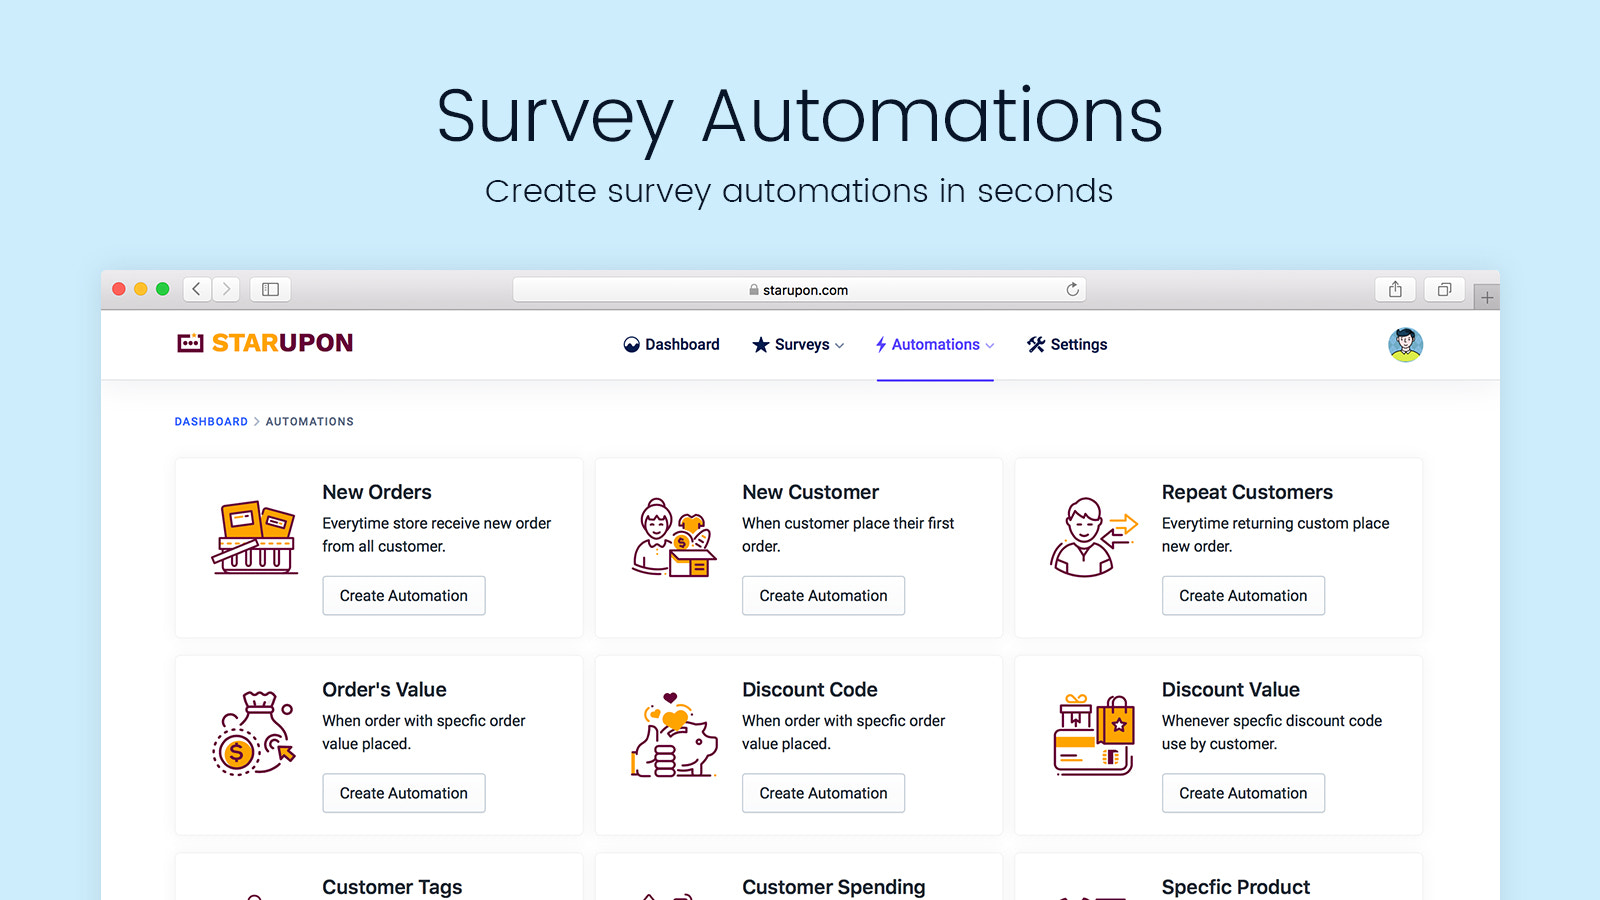 Create Survey Automations in Seconds